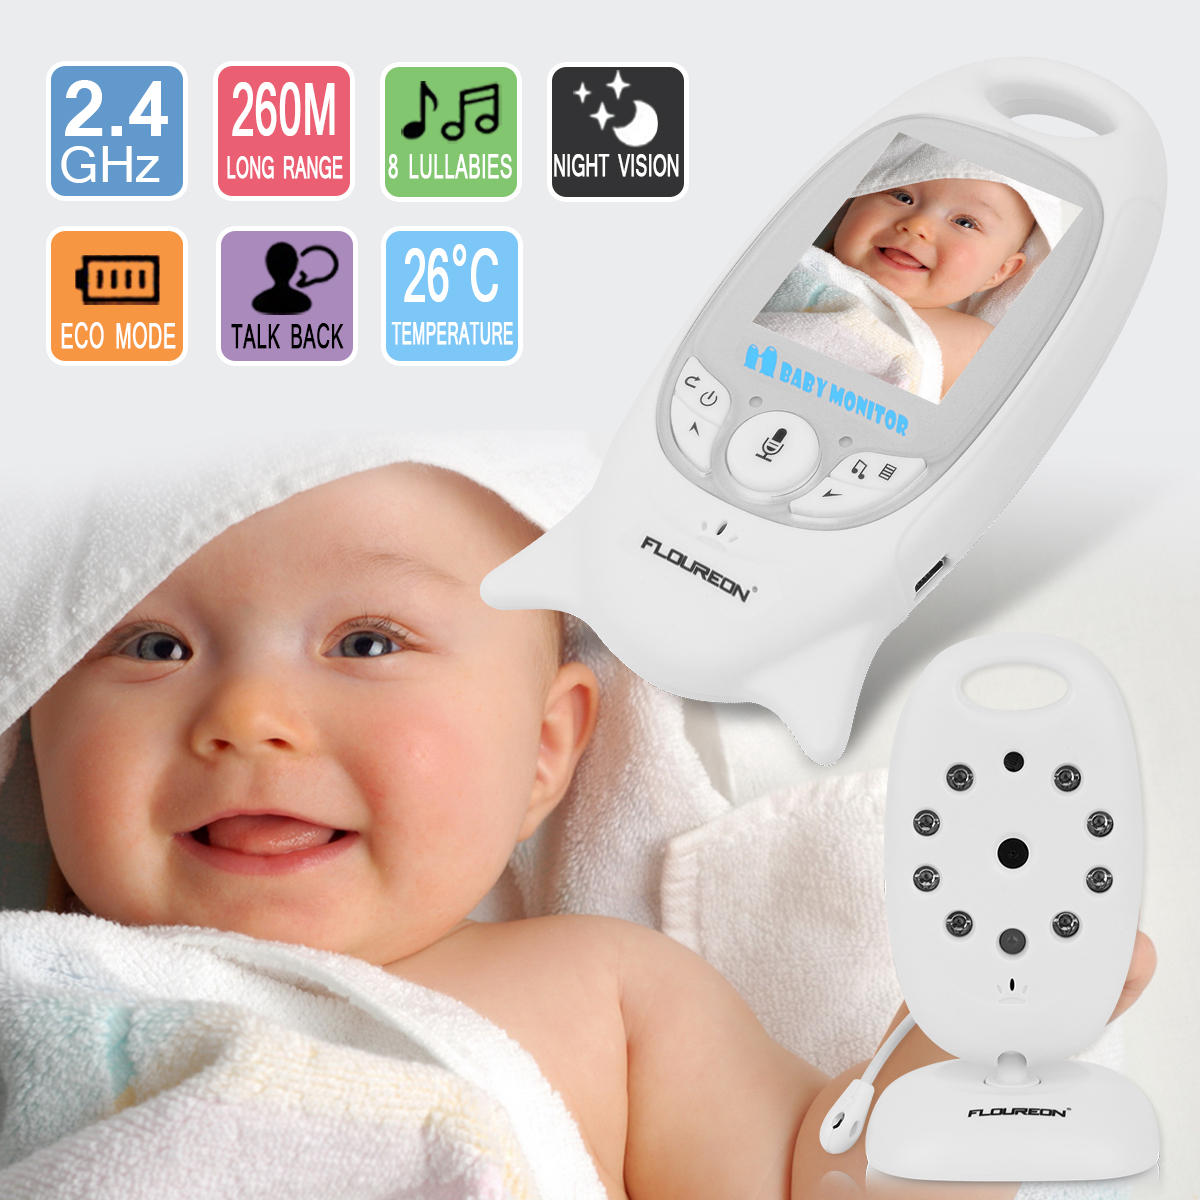 460a2563aac4 1  2.4 GHz Wireless Baby Monitor Receive 1  Wireless Baby Camera 2   Power  adapters(EU plug) 1   User manual